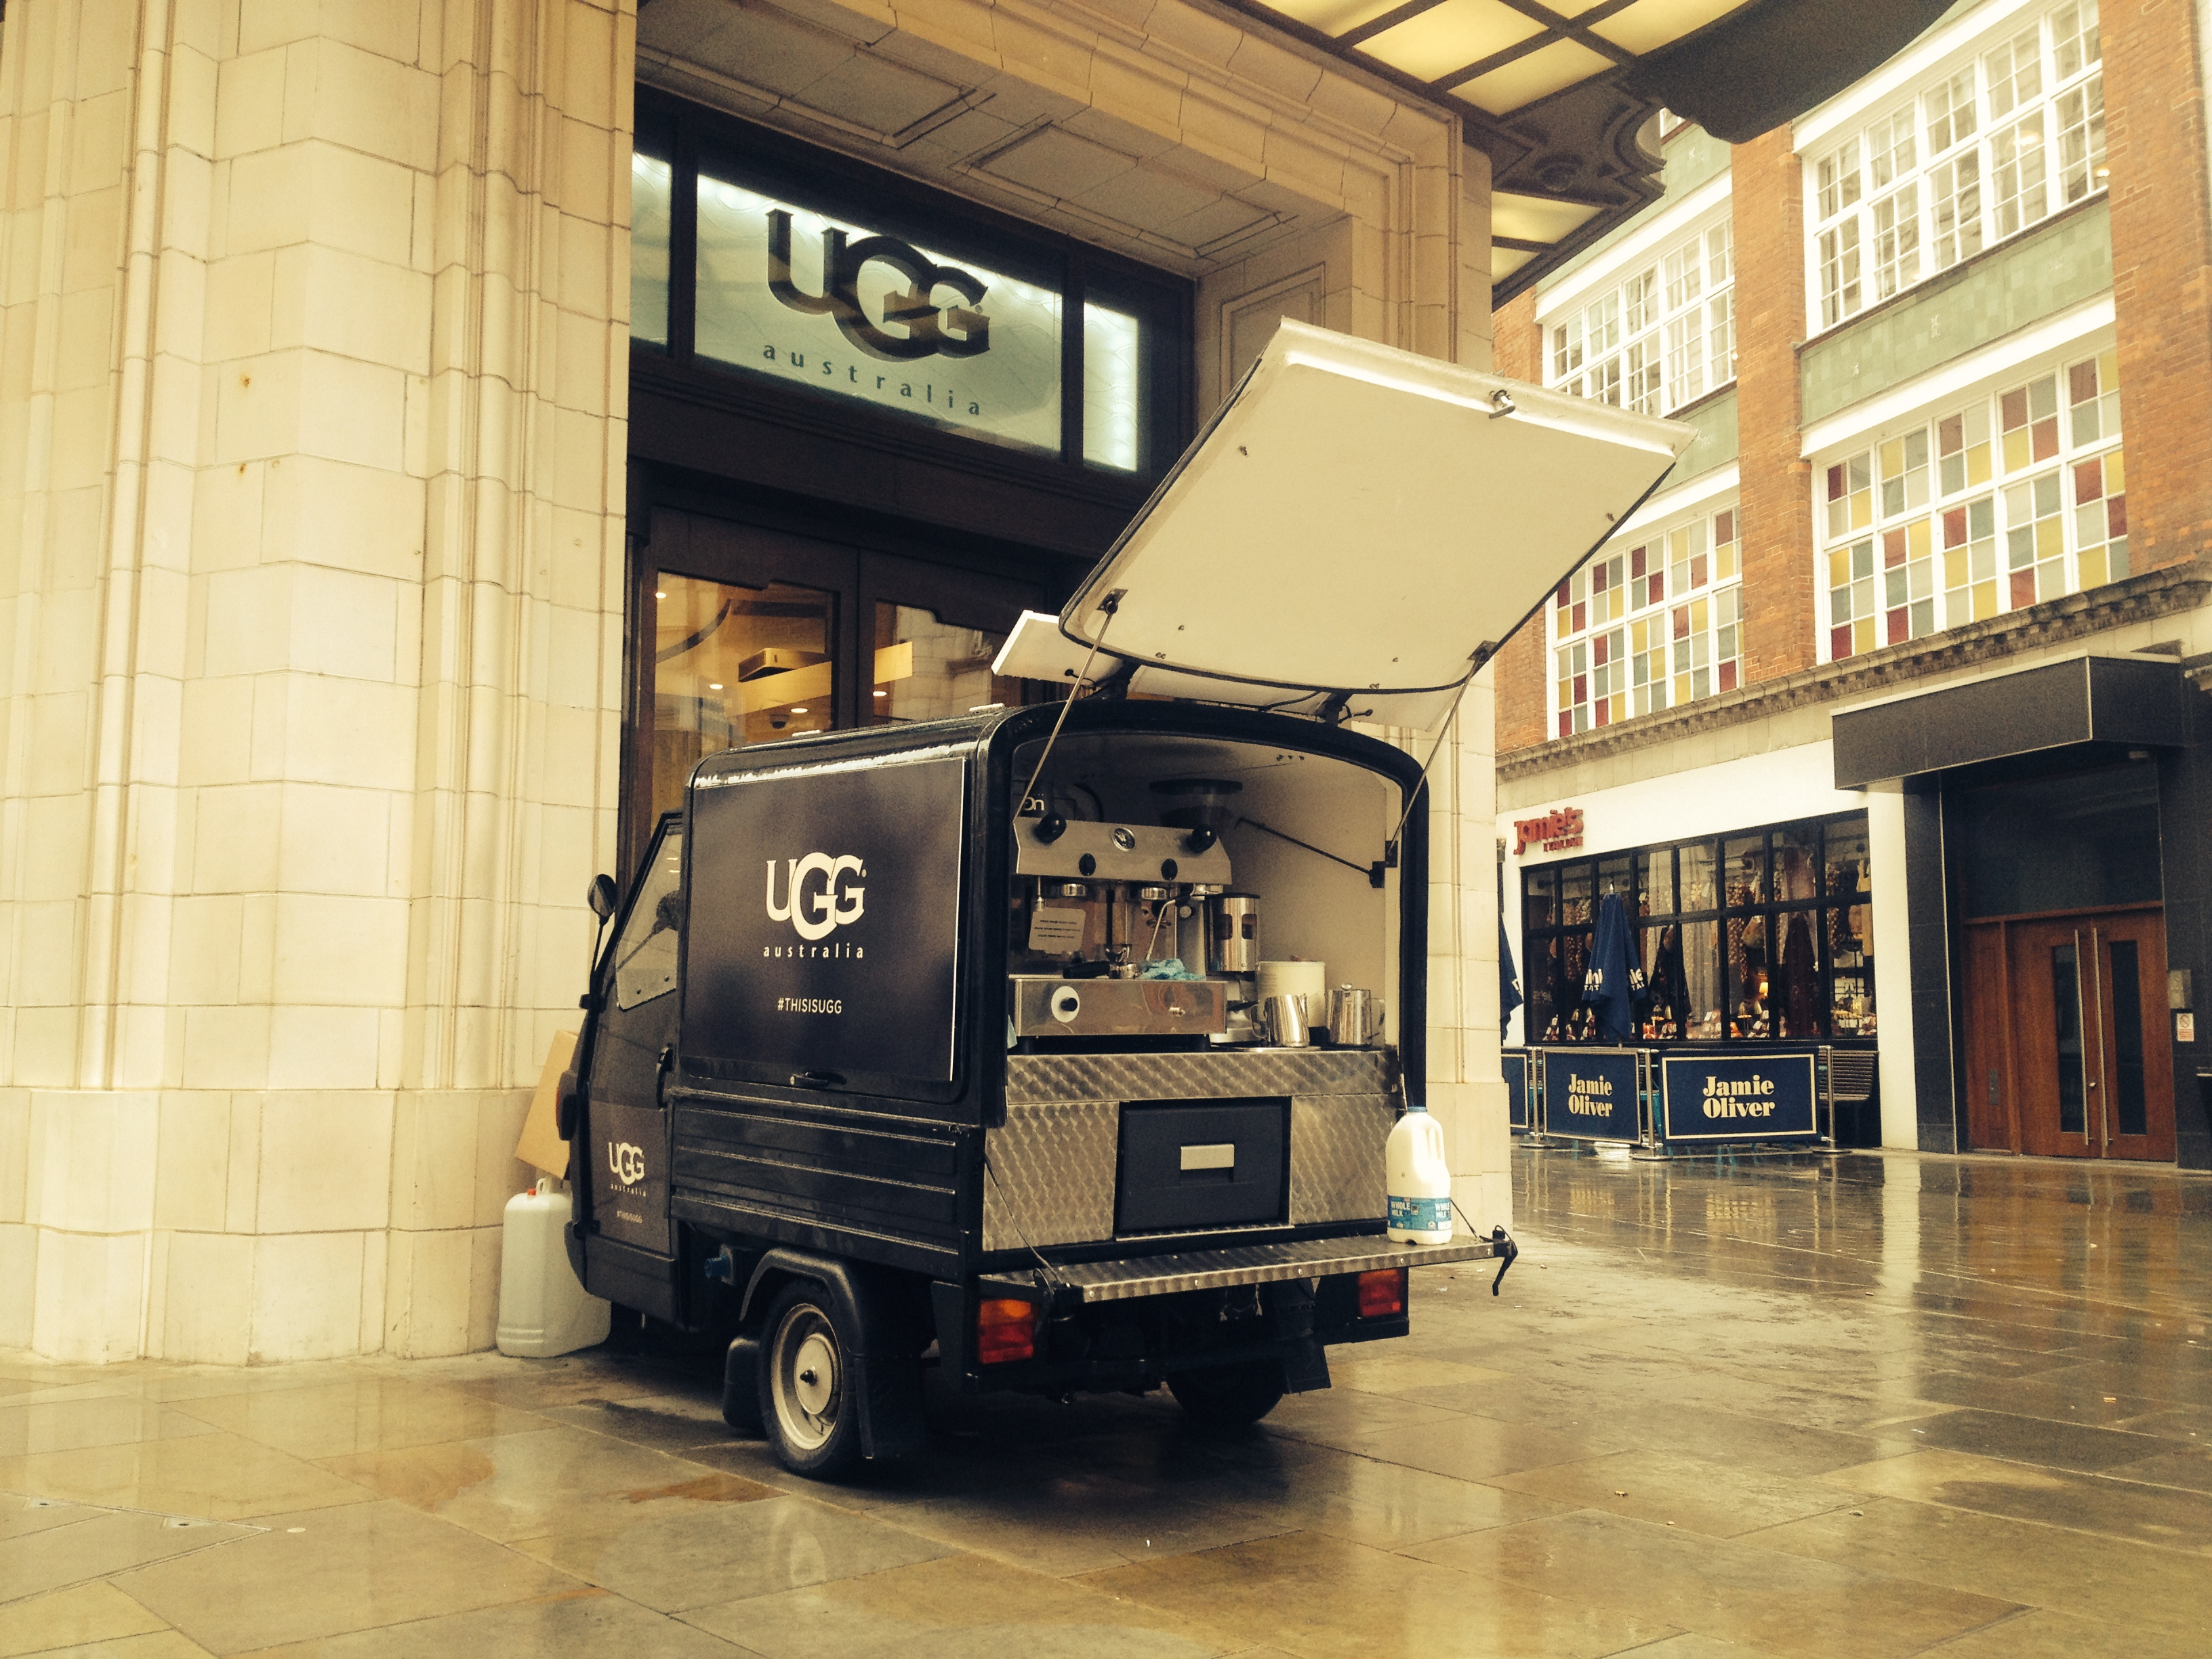 The Mobile Coffee Bean mobile coffee van branded for UGG